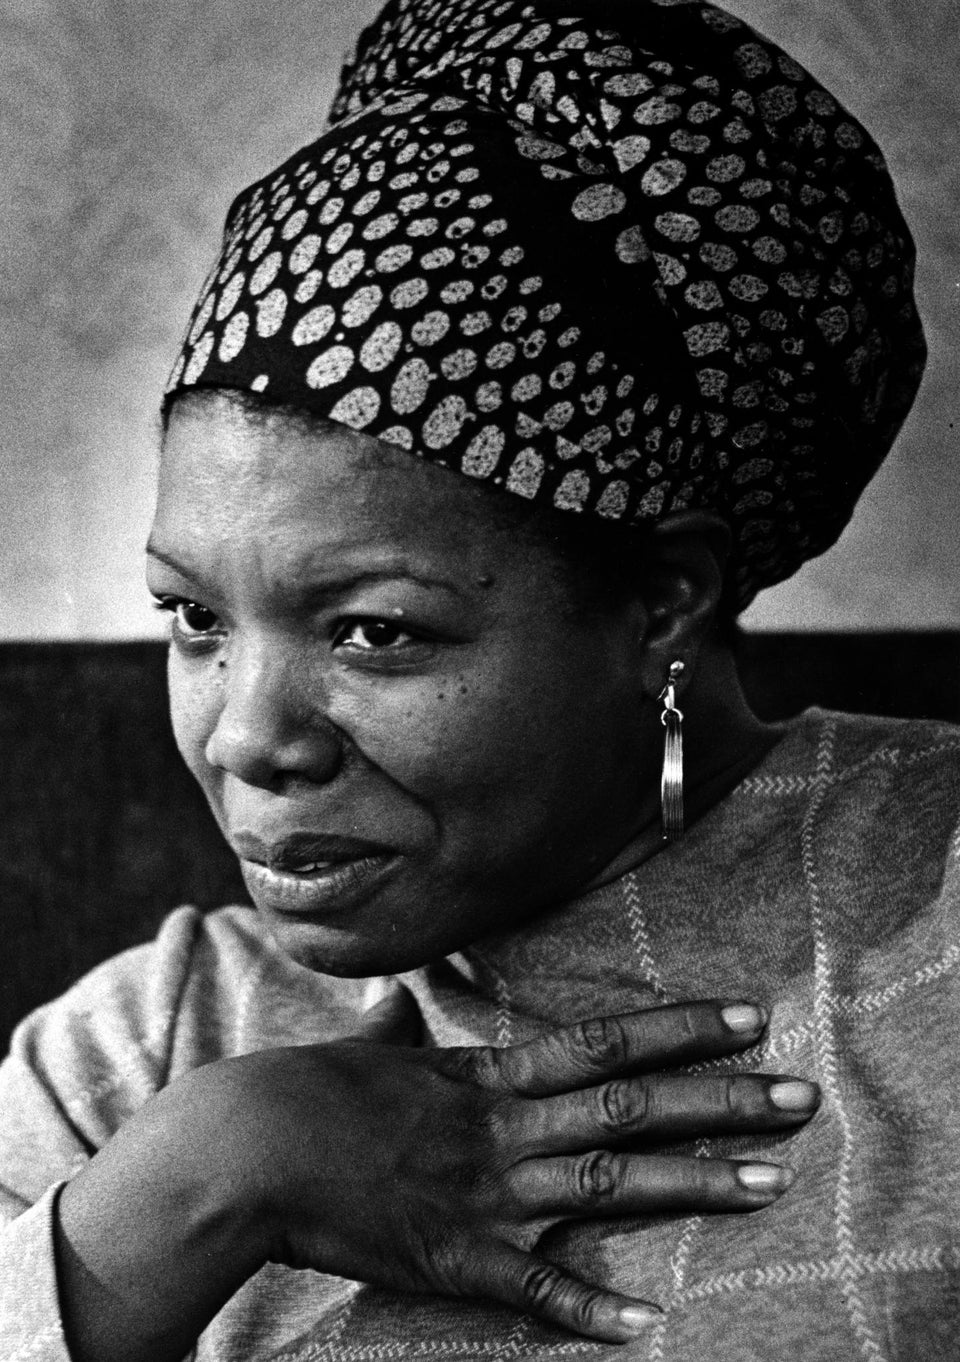 There's a Kickstarter Campaign for a Maya Angelou Documentary